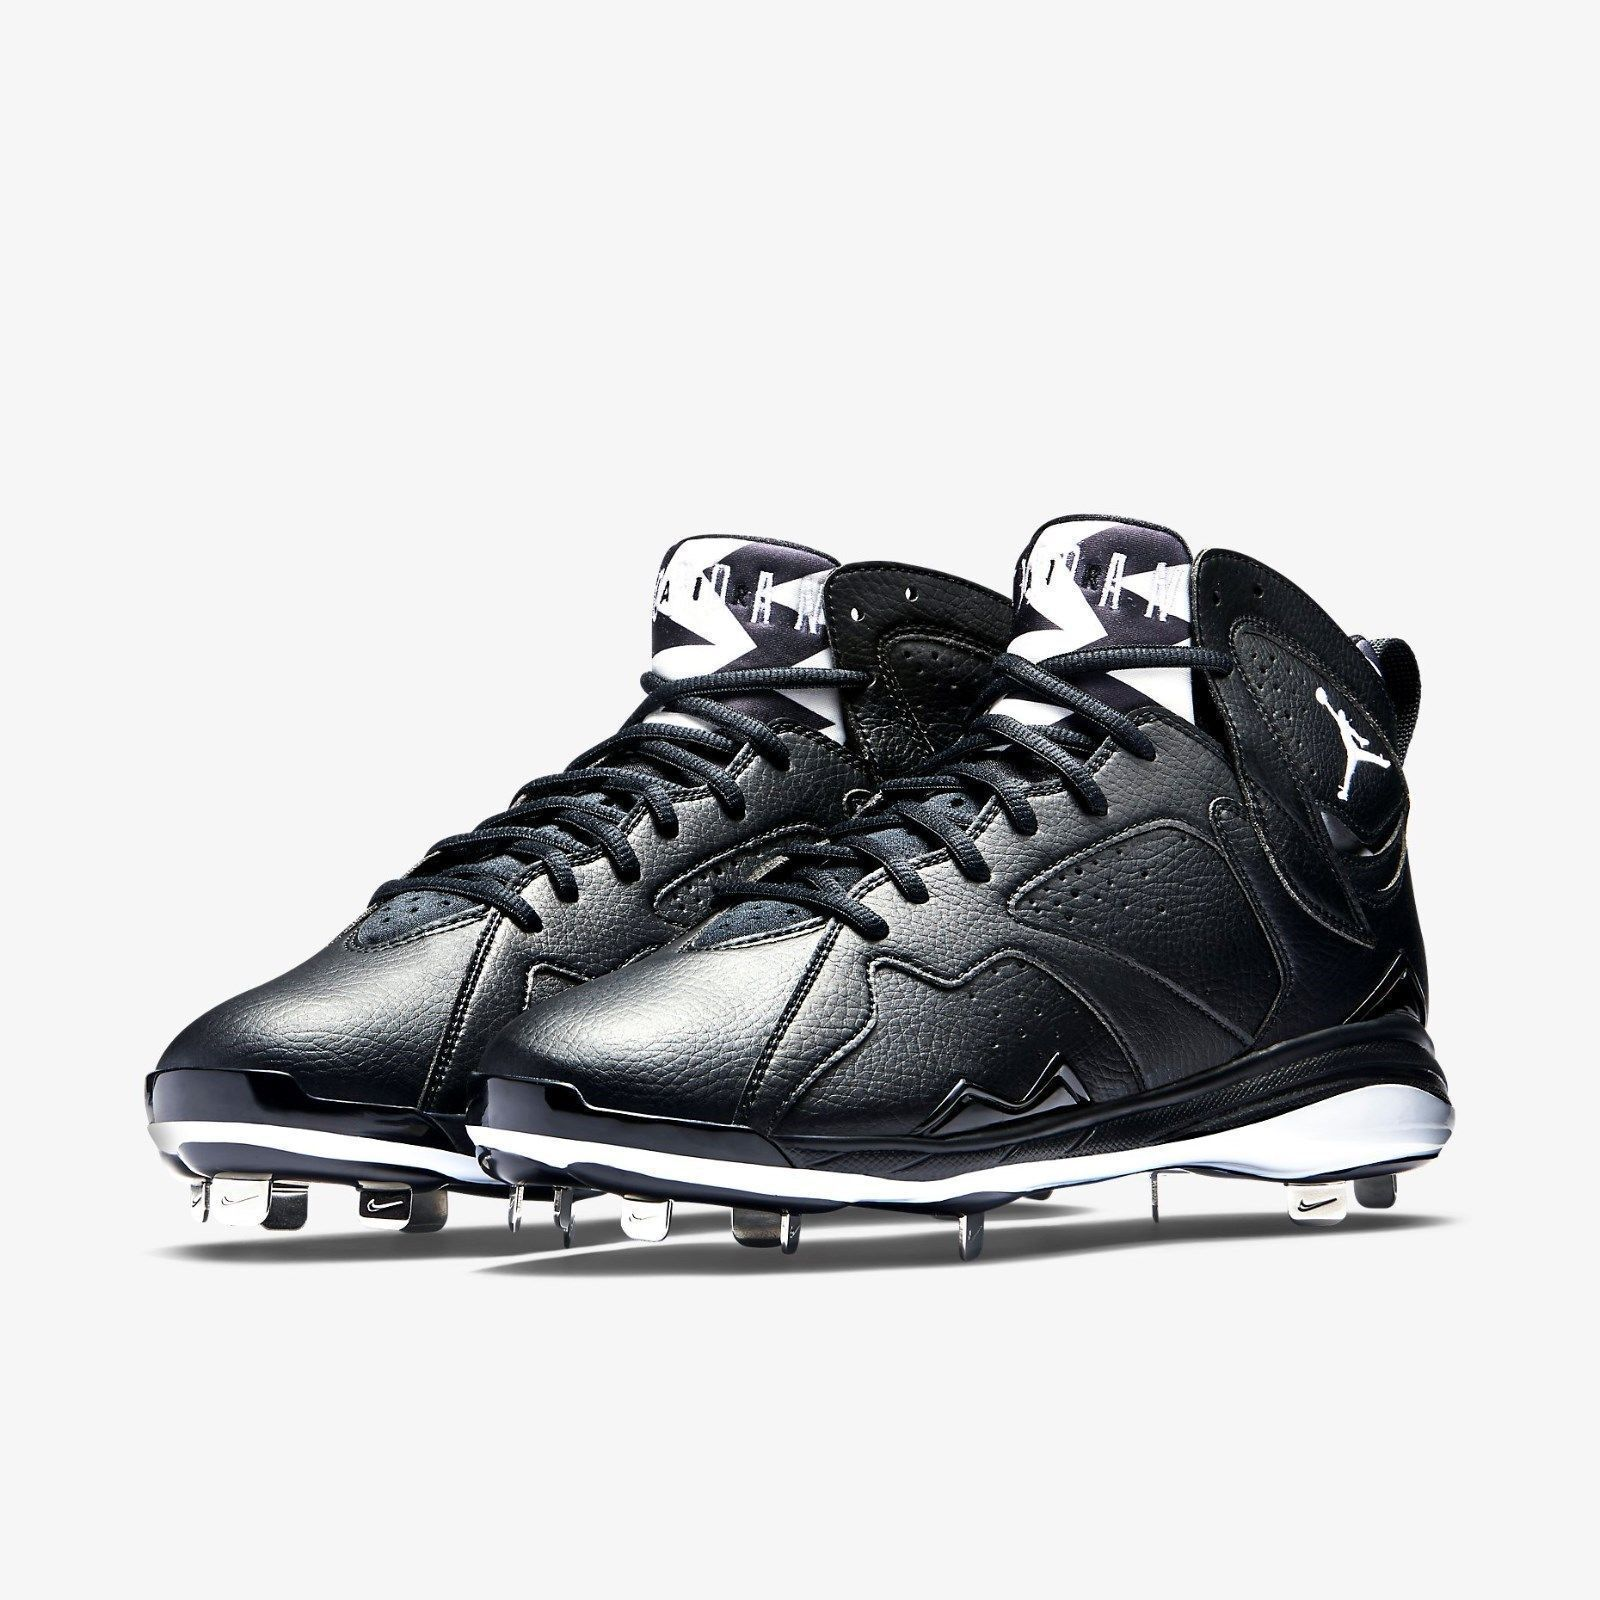 New Mens 14 Nike Jordan Retro 7 VII Metal Leather Cleats shoes Black 684943-010